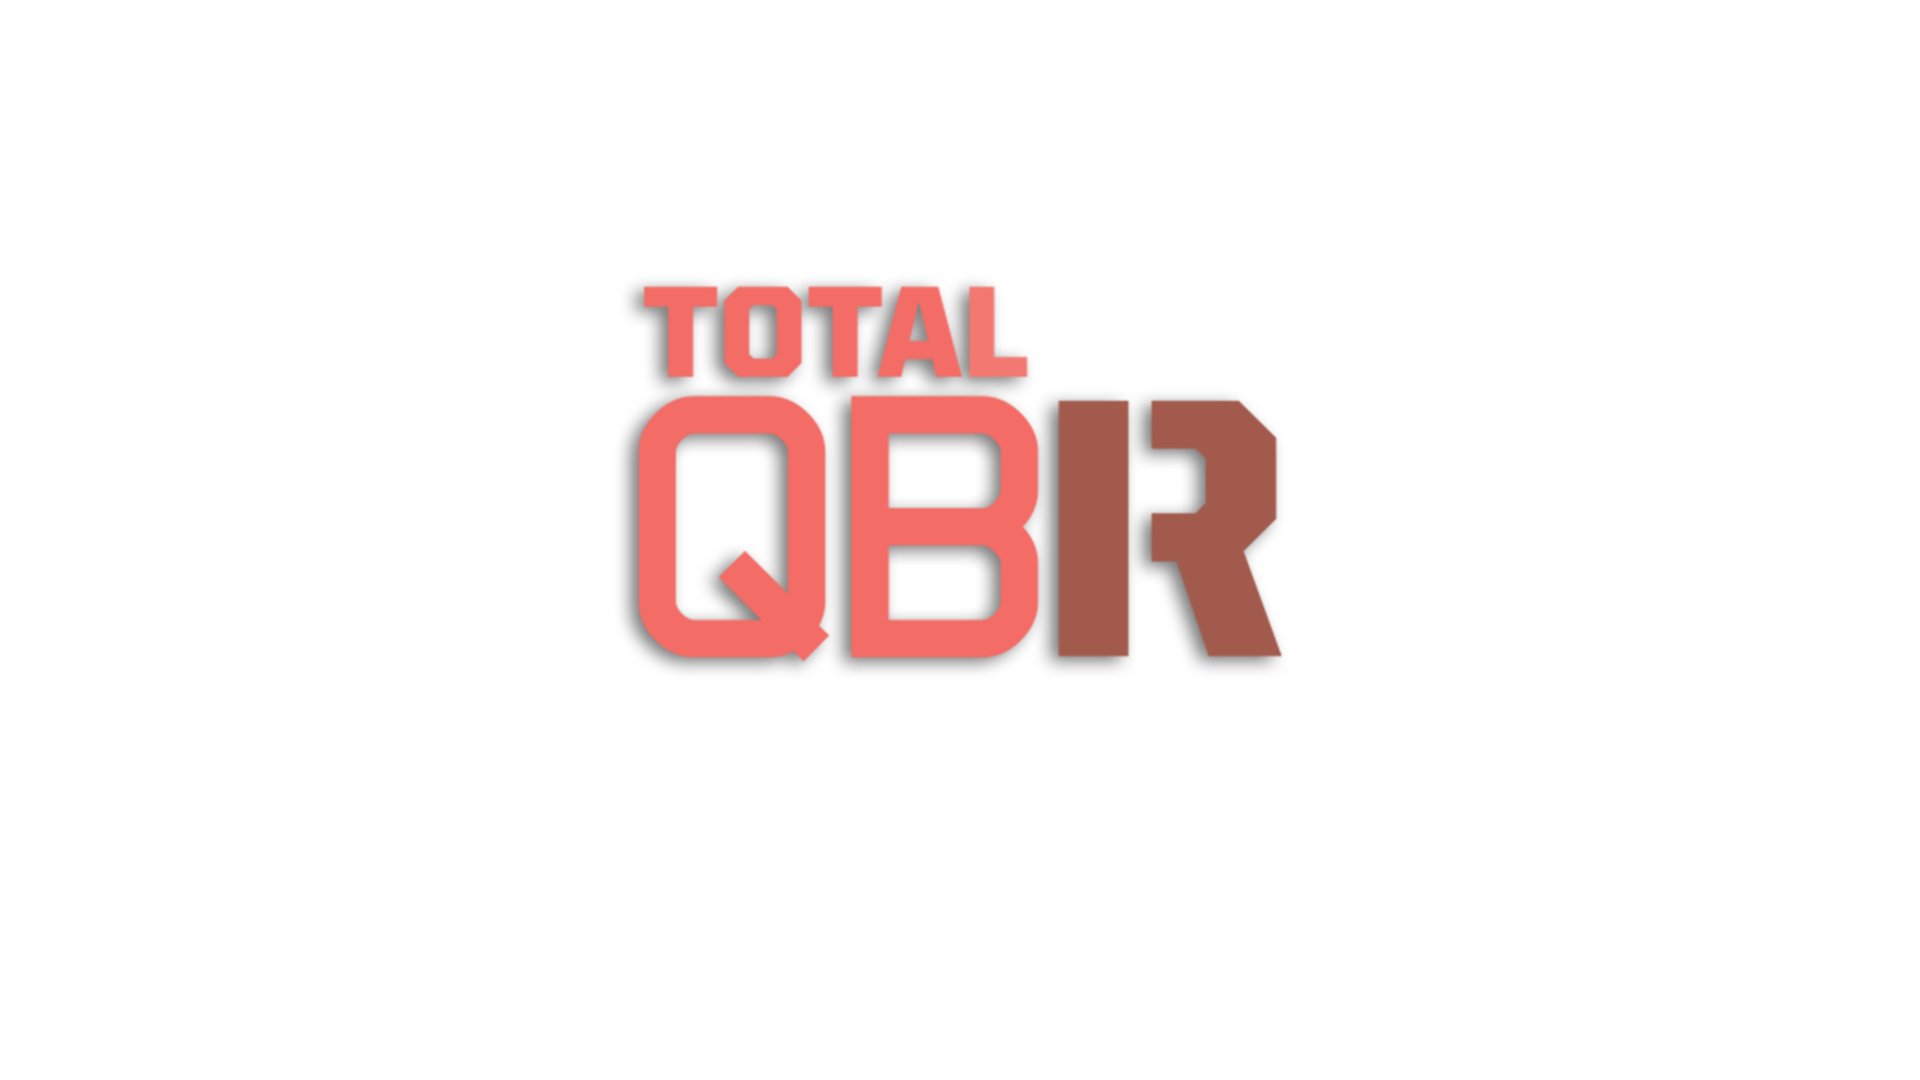 Total QBR